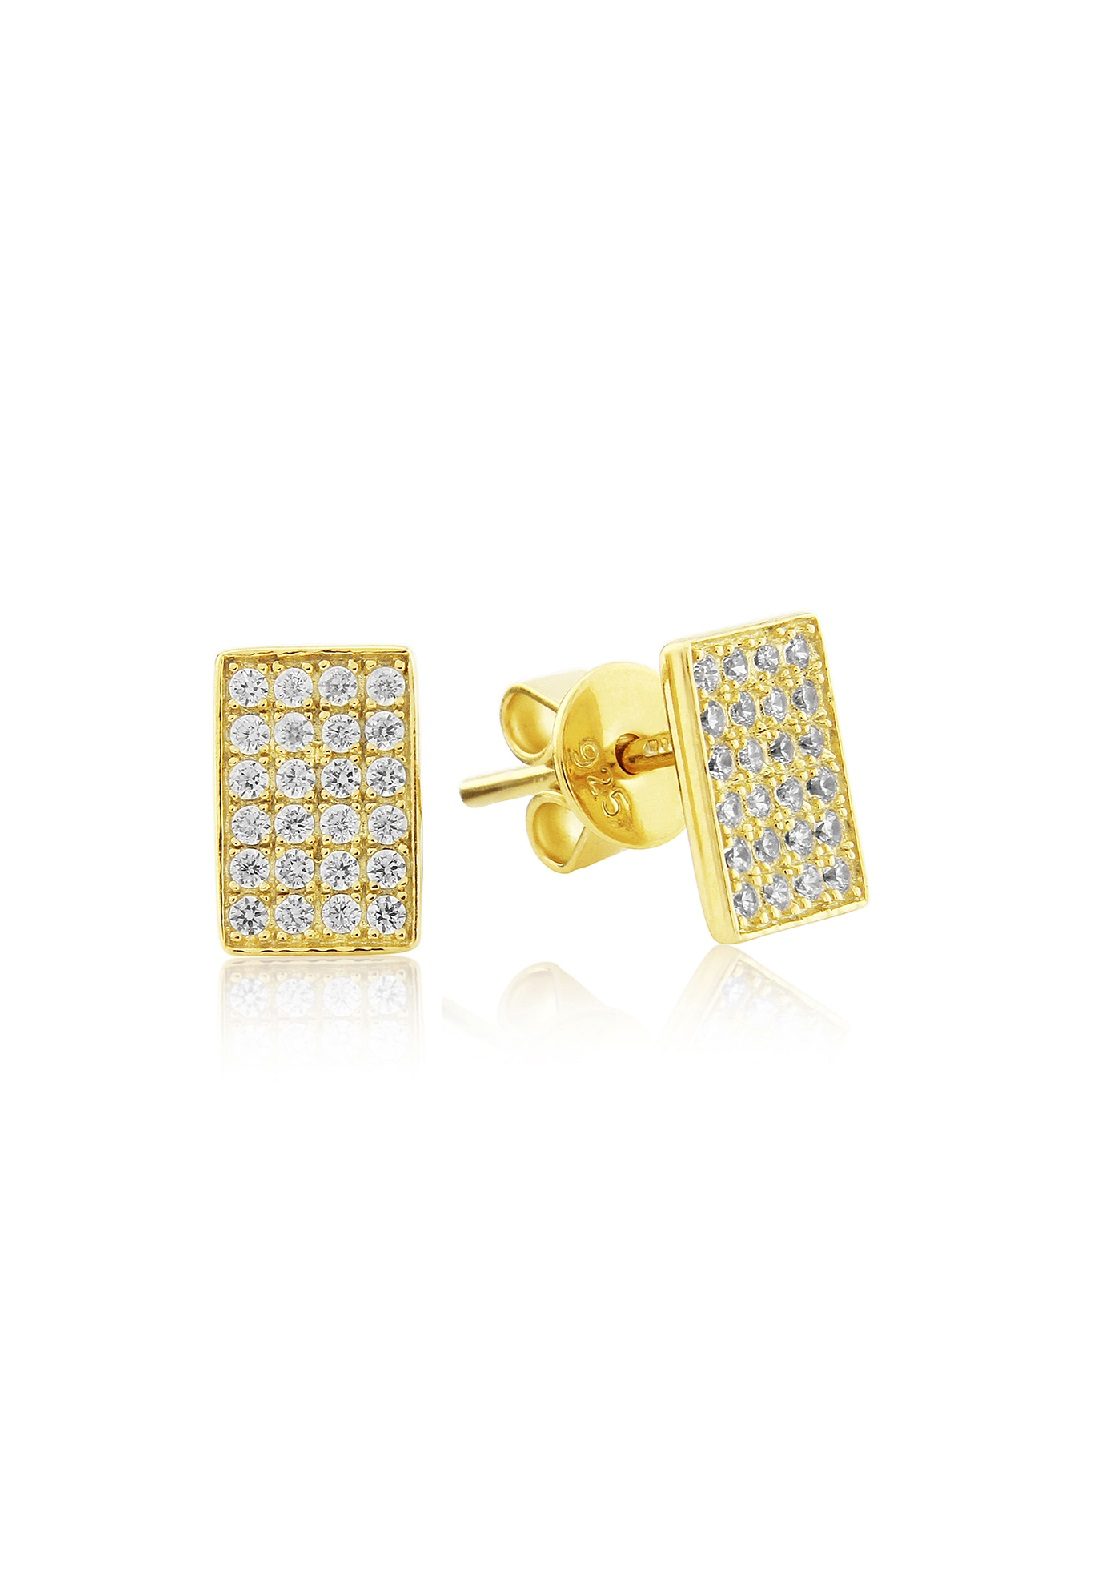 674ded641 Waterford Crystal Sterling Silver Yellow Rectangle Stud Earrings